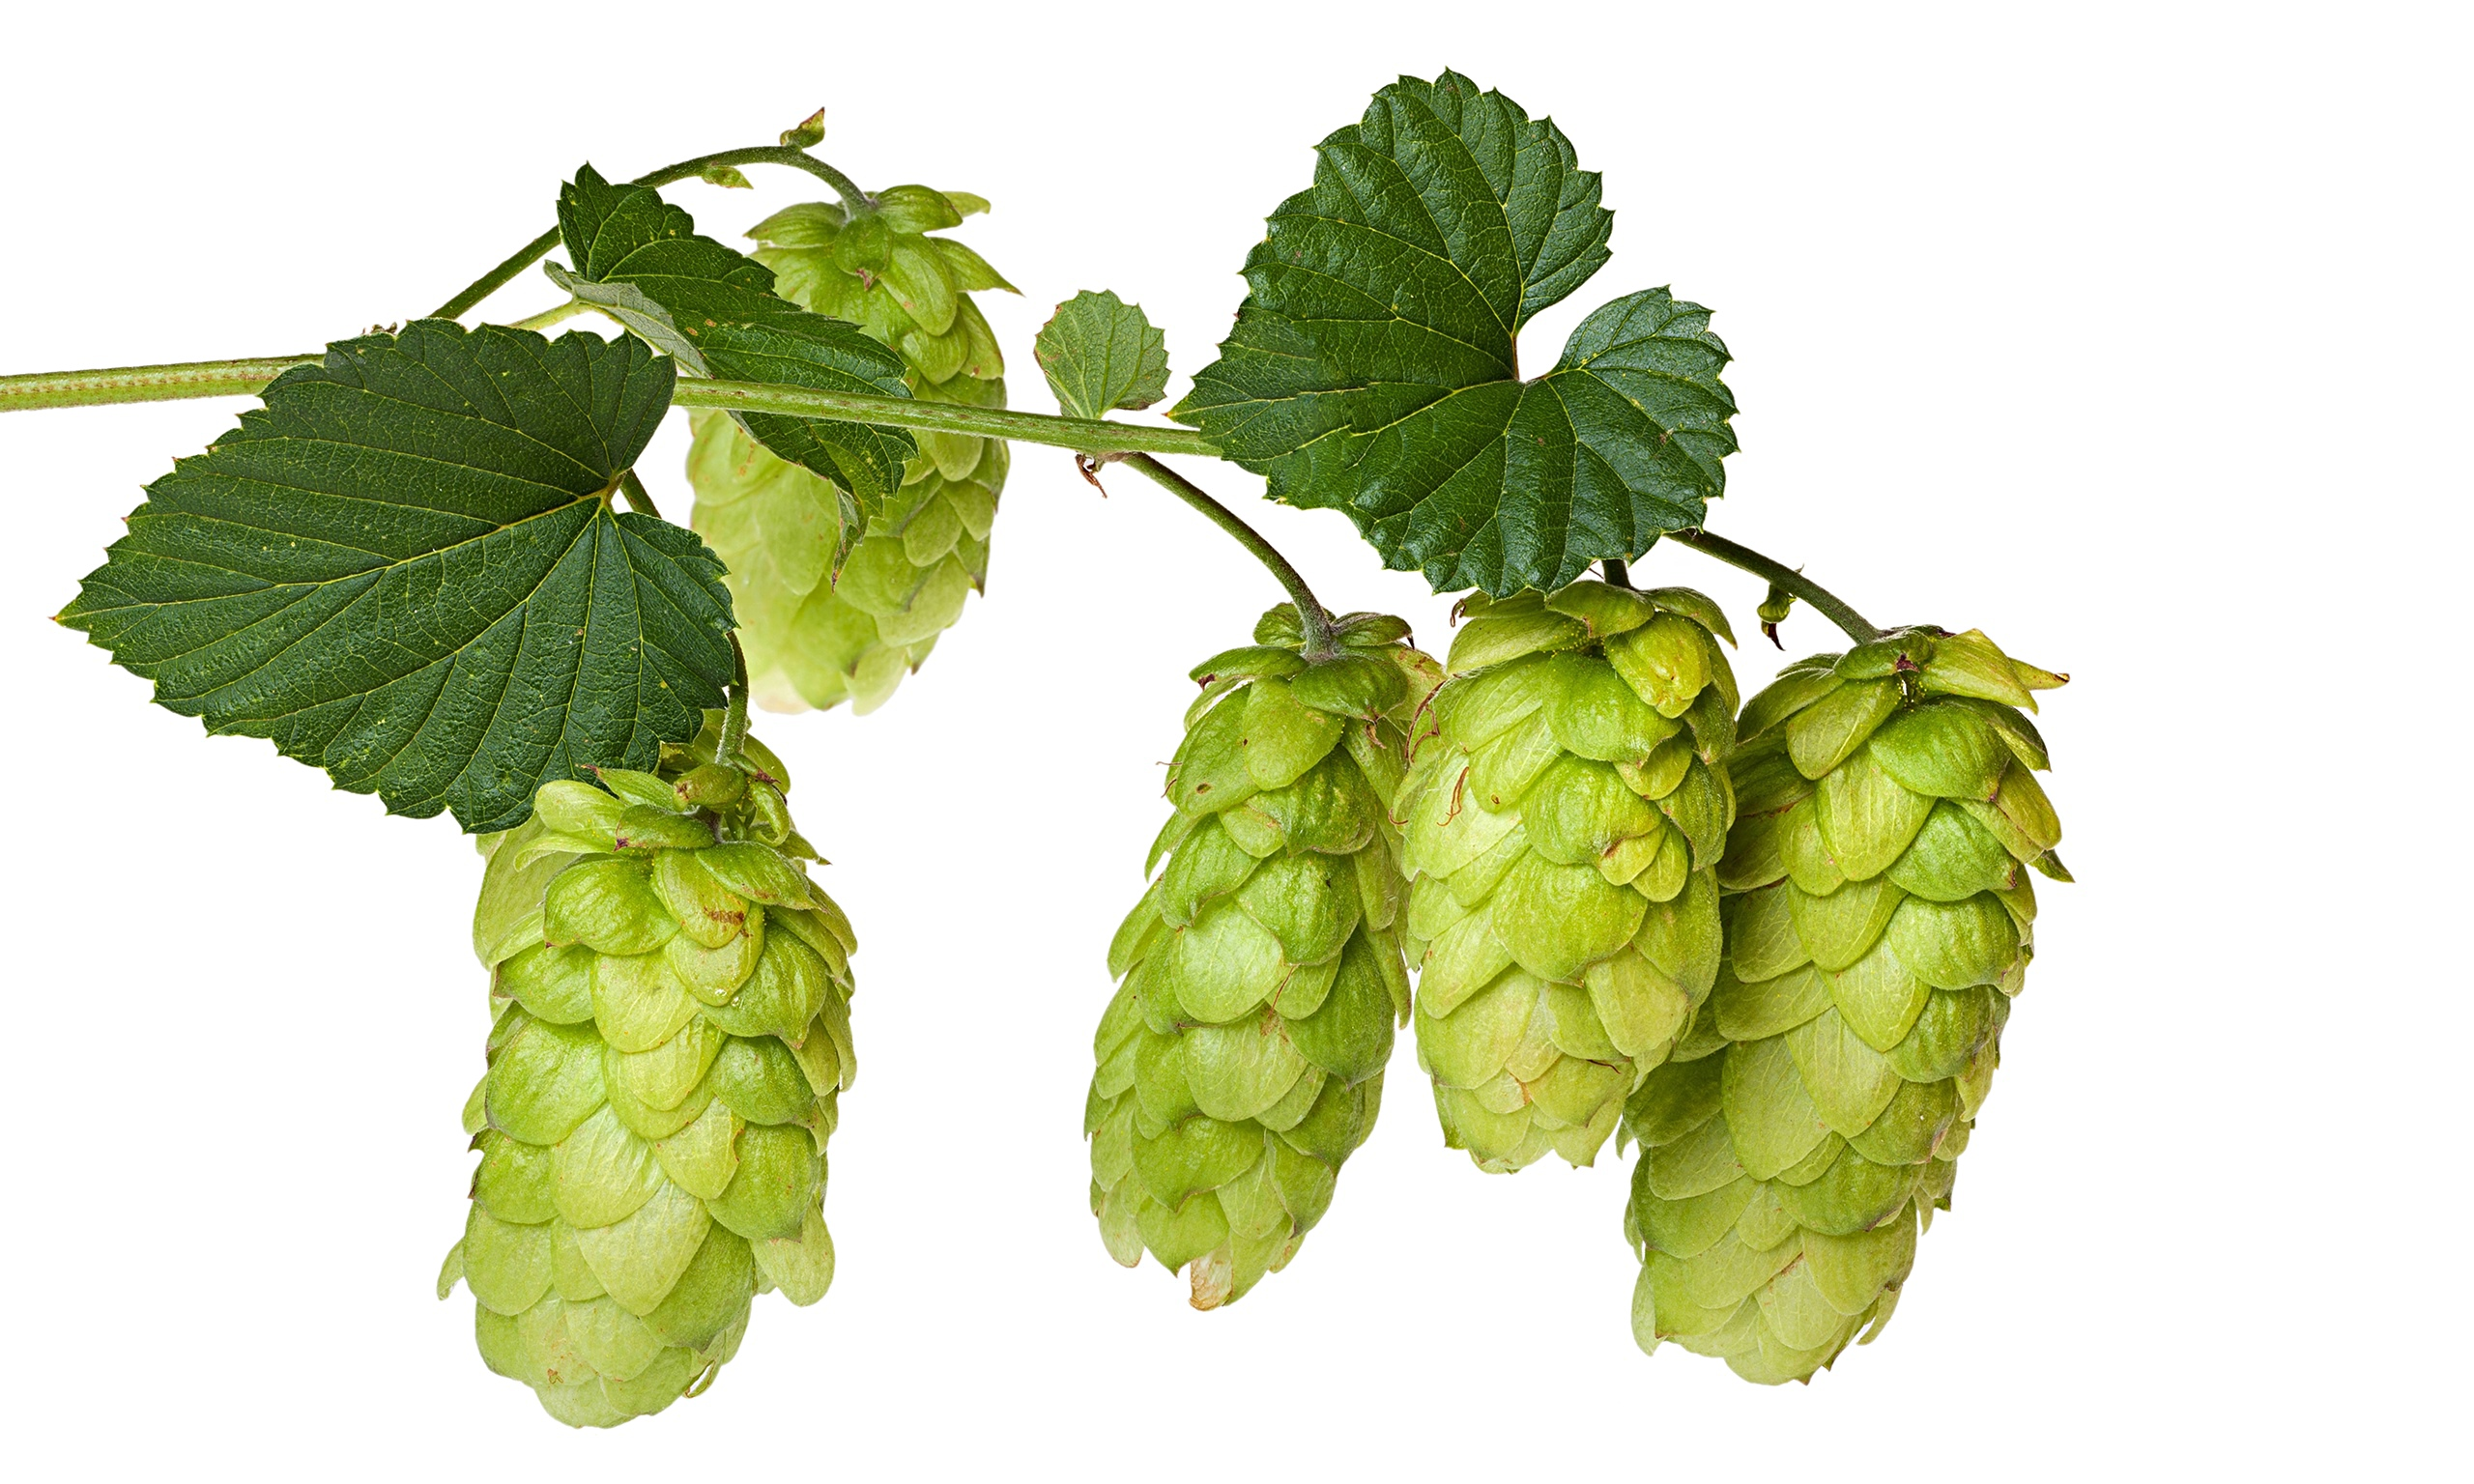 Hops and Craft Beer: Are We in a Bubble?.